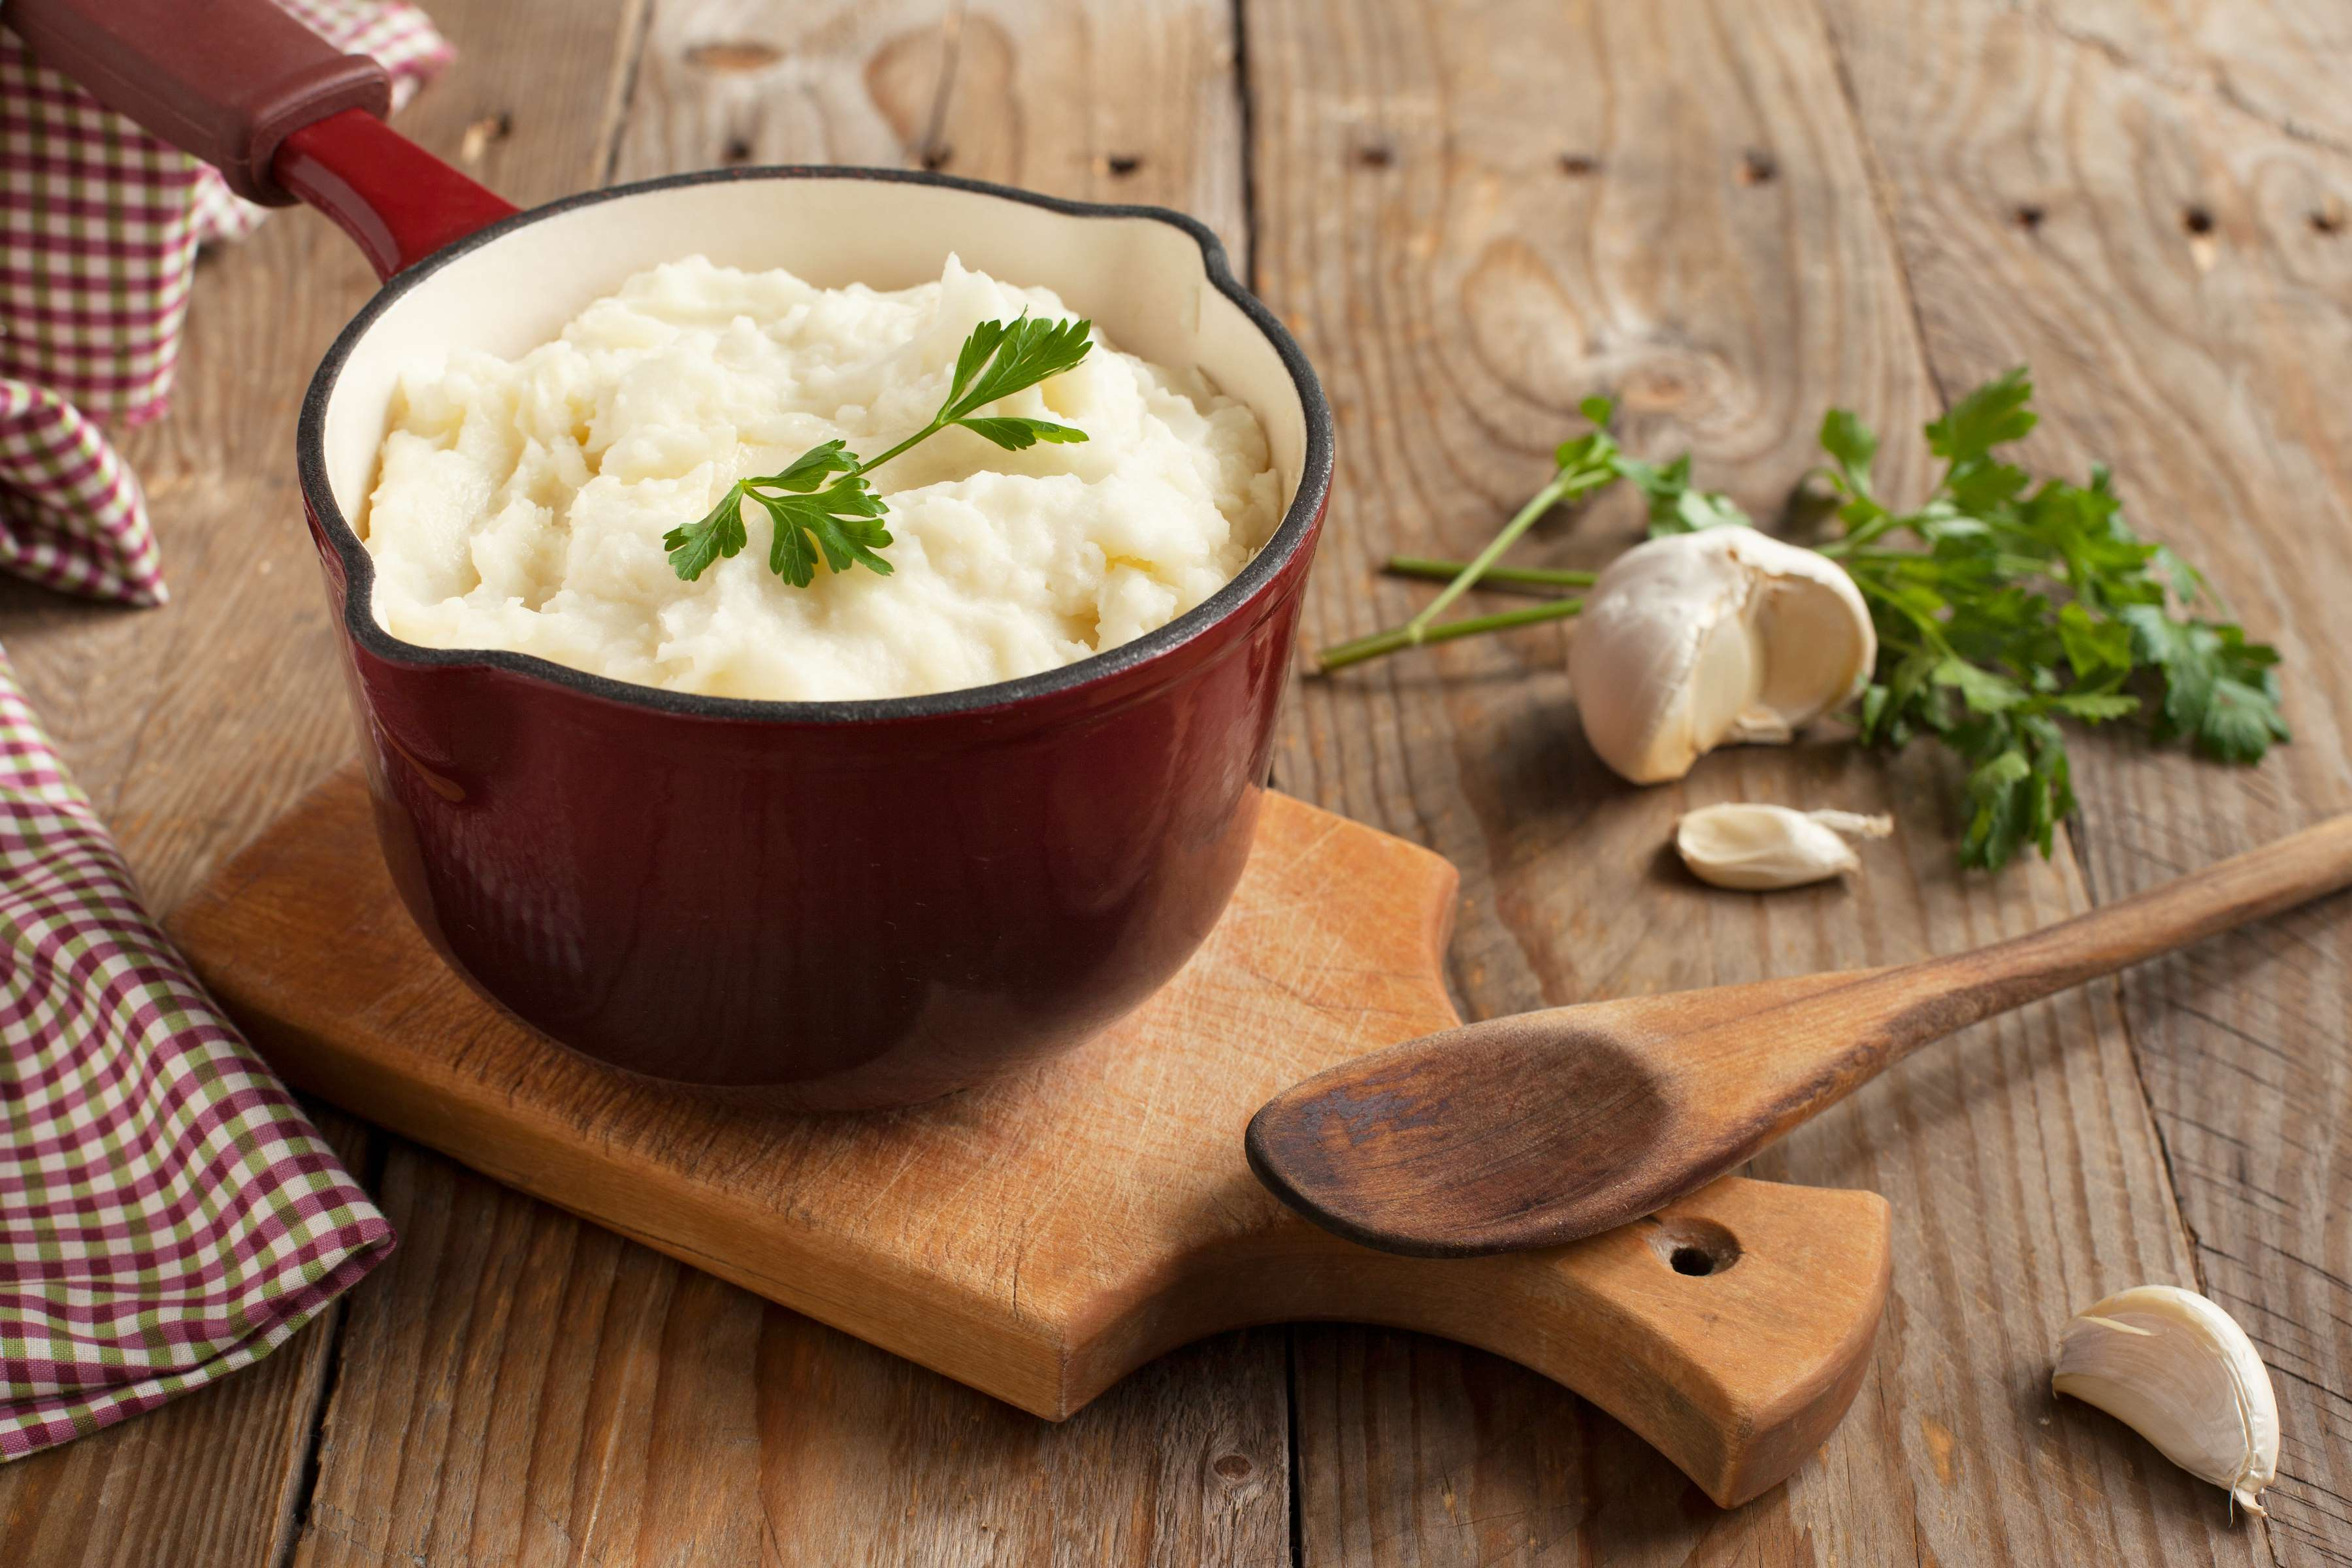 Sour Cream And Garlic Mashed Potatoes Recipe